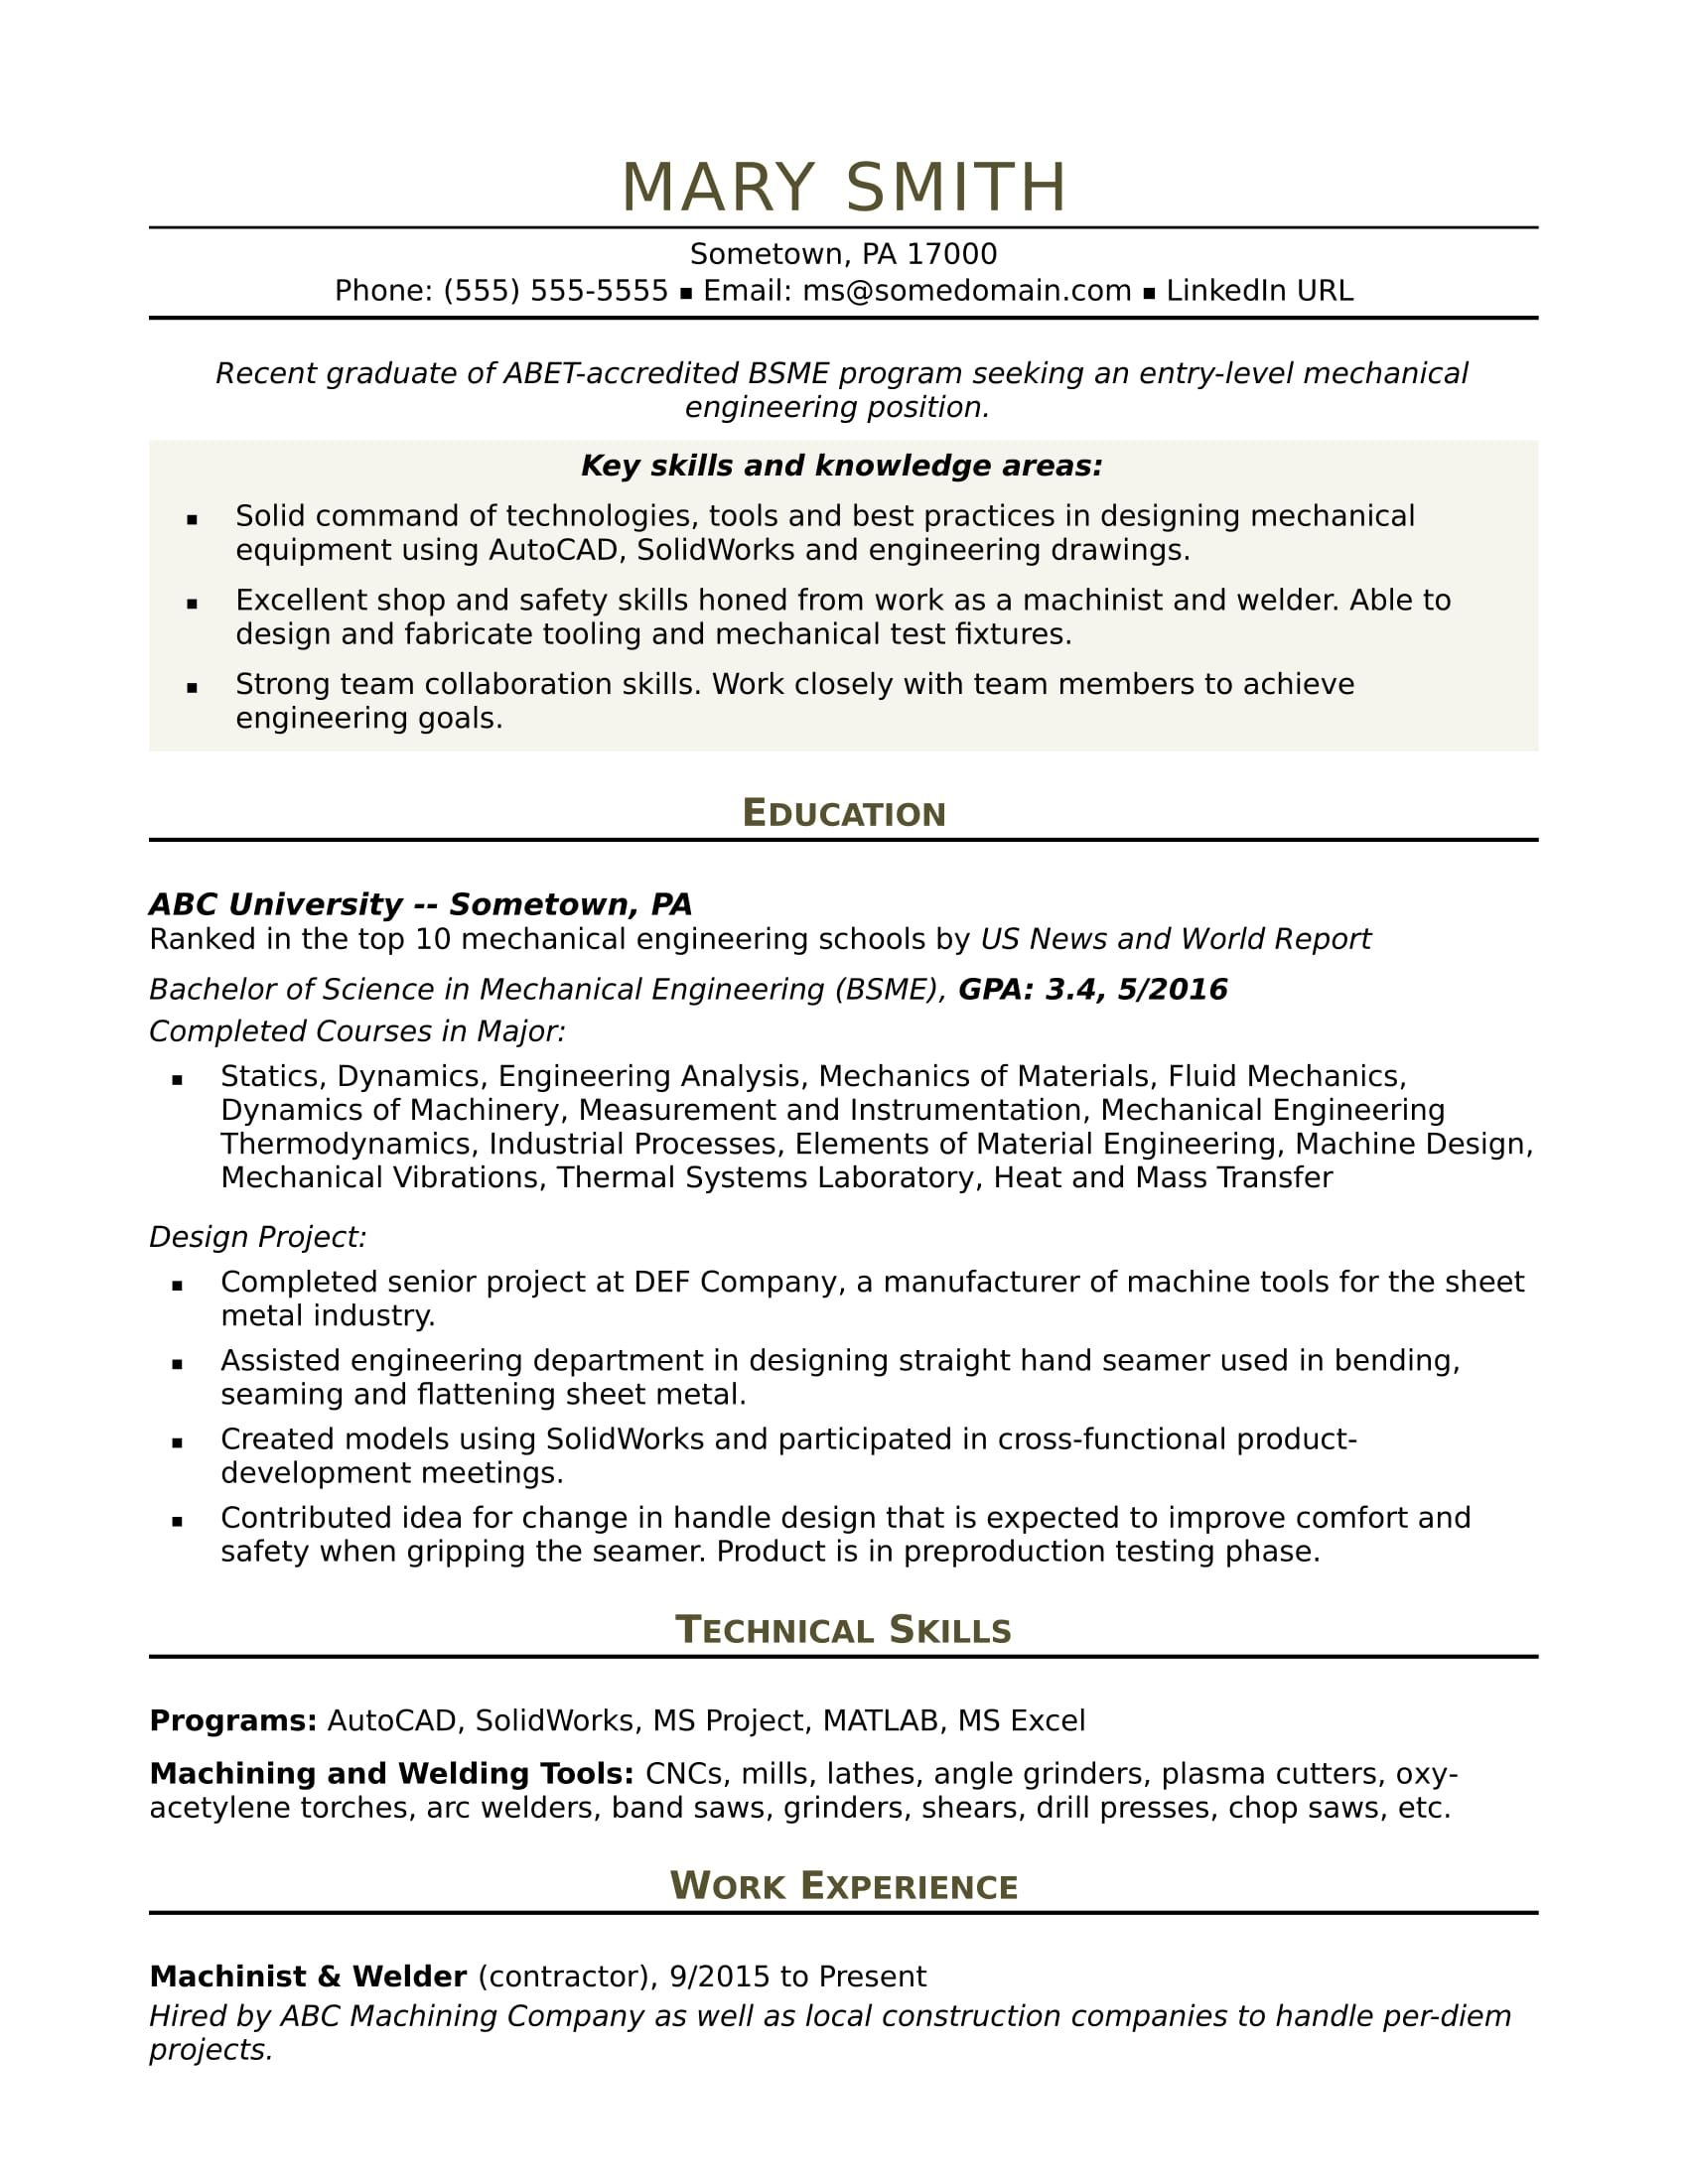 Sample Resume For An Entry Level Mechanical Engineer Engineering Resume Mechanical Engineer Resume Engineering Resume Templates